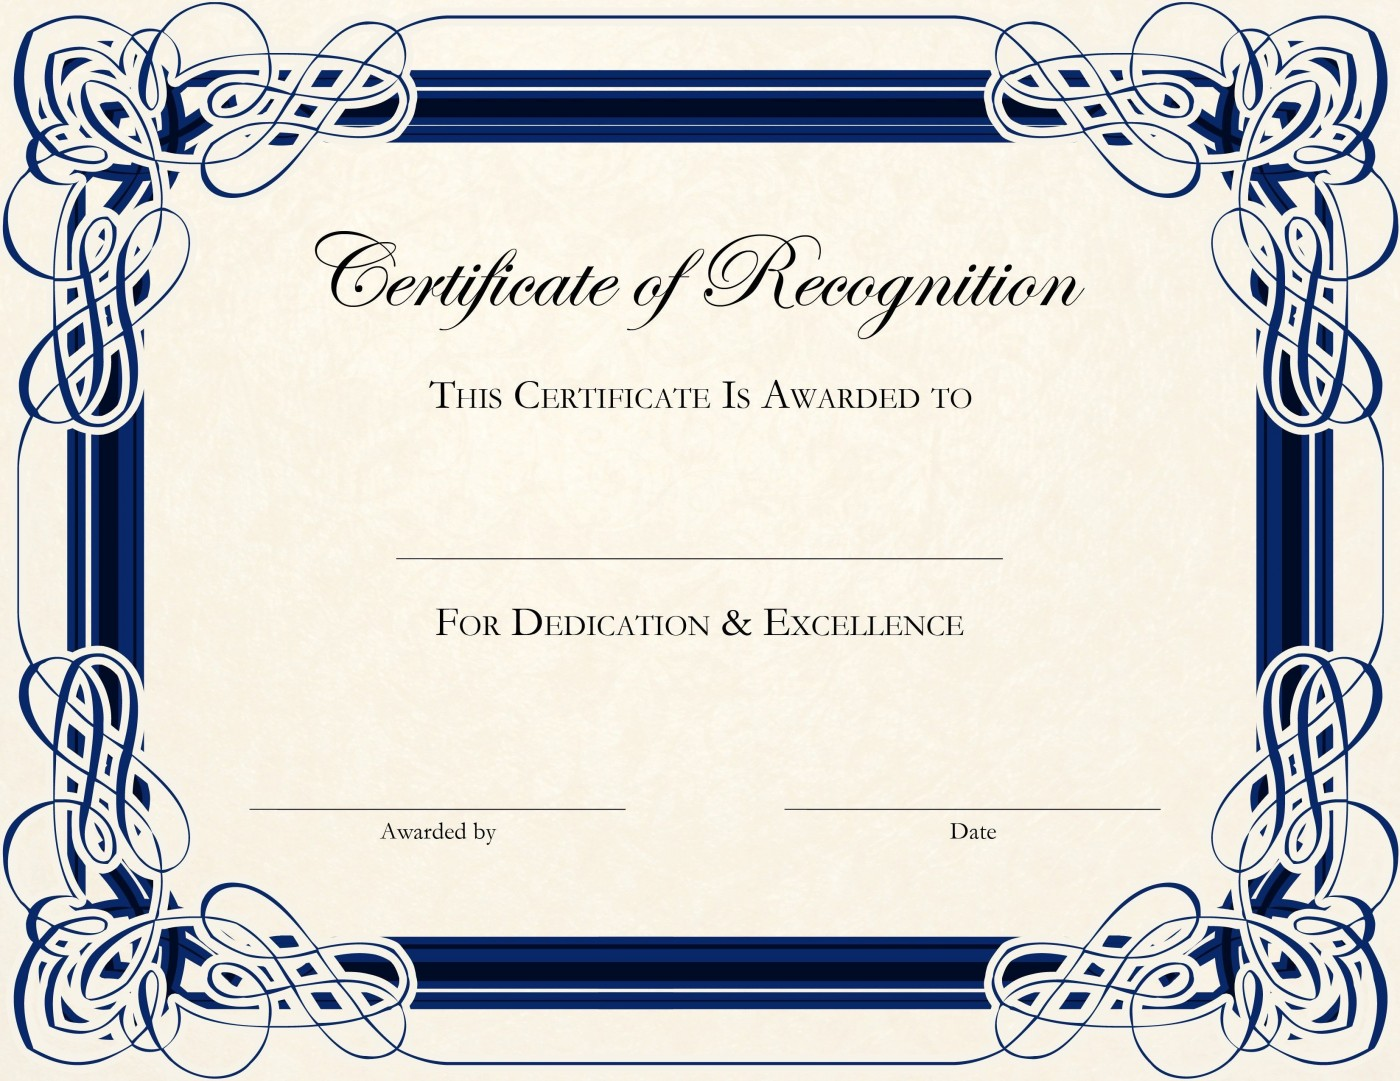 002 Fantastic Certificate Of Award Template Word Free Concept 1400